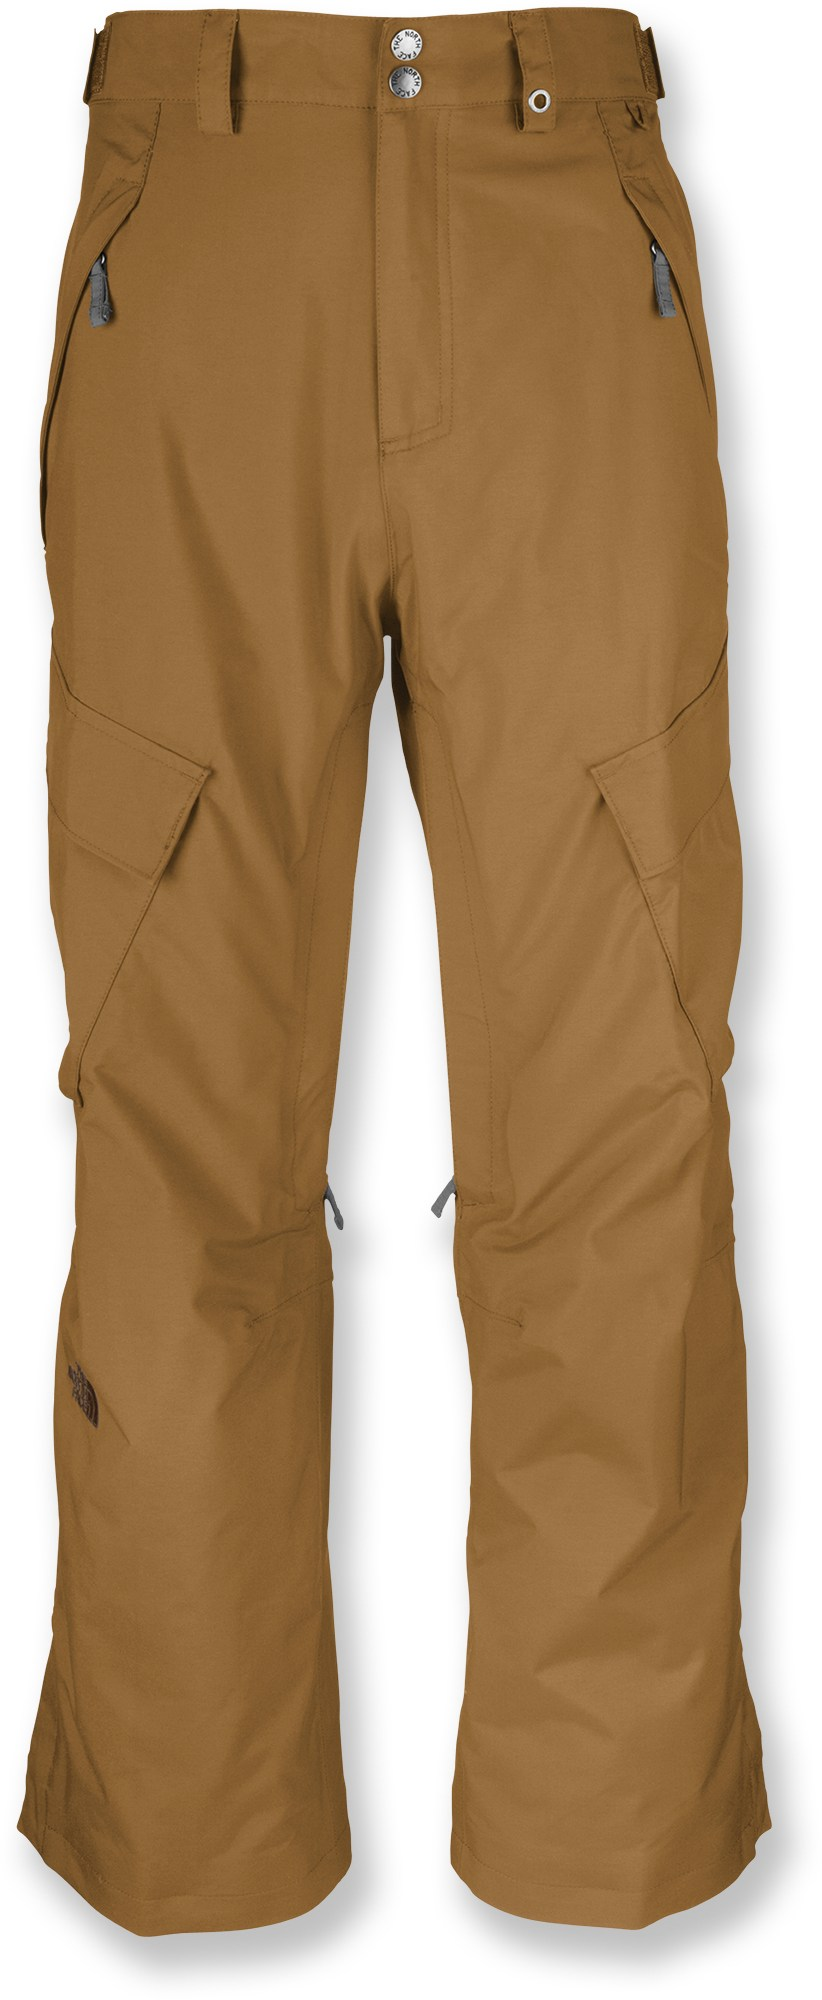 Snowboard The North Face Slasher Cargo Shell Pants $160